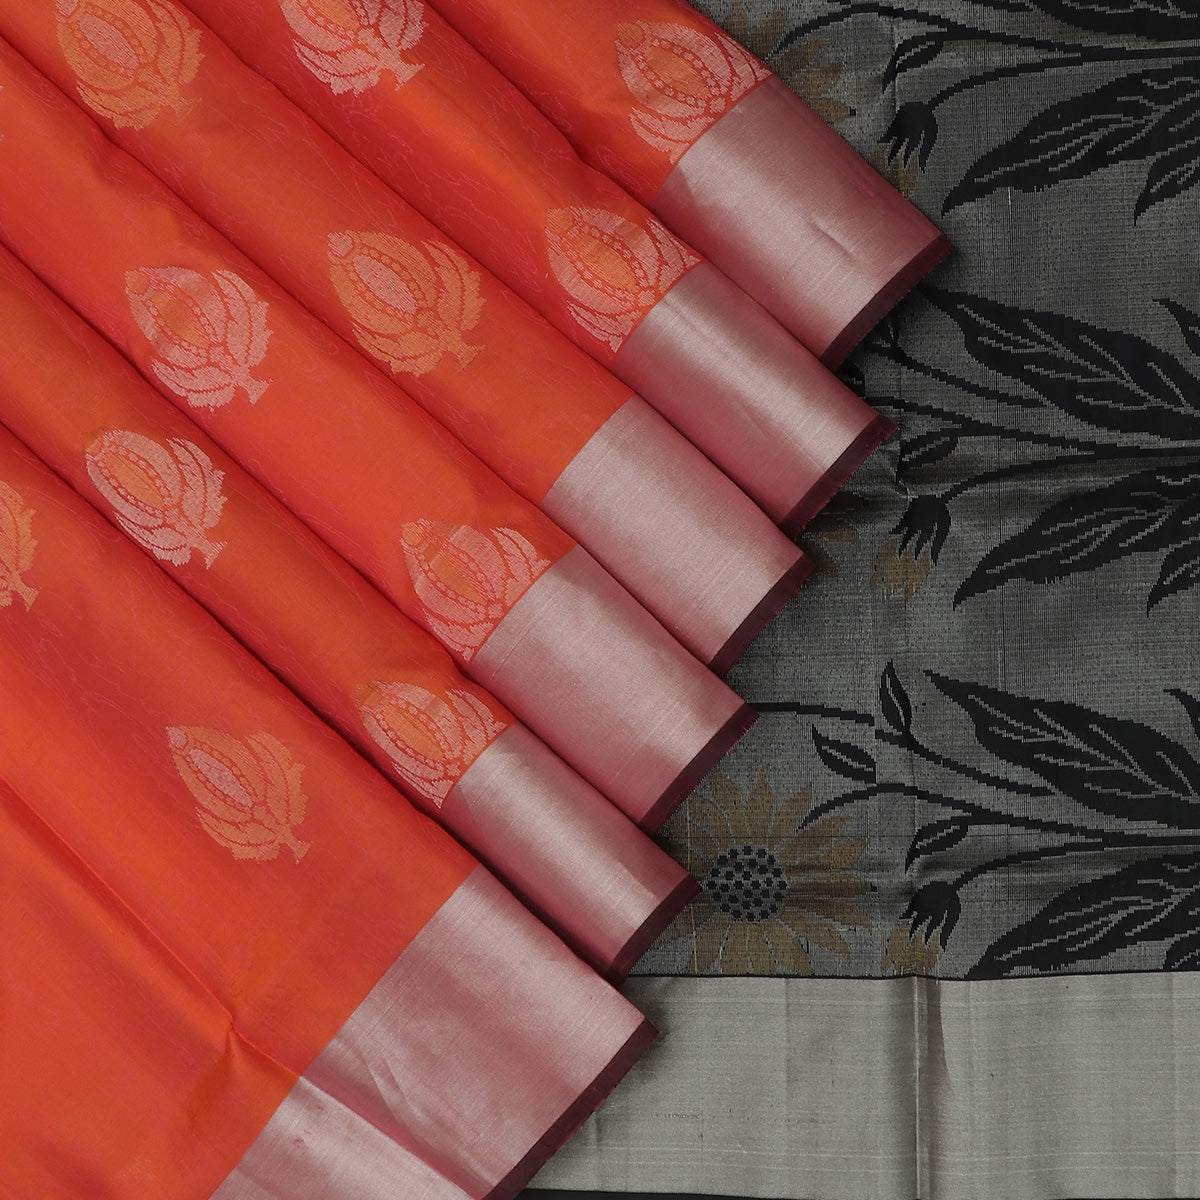 Soft Silk Saree Brick Orange with buttas and Black with Silver Zari border